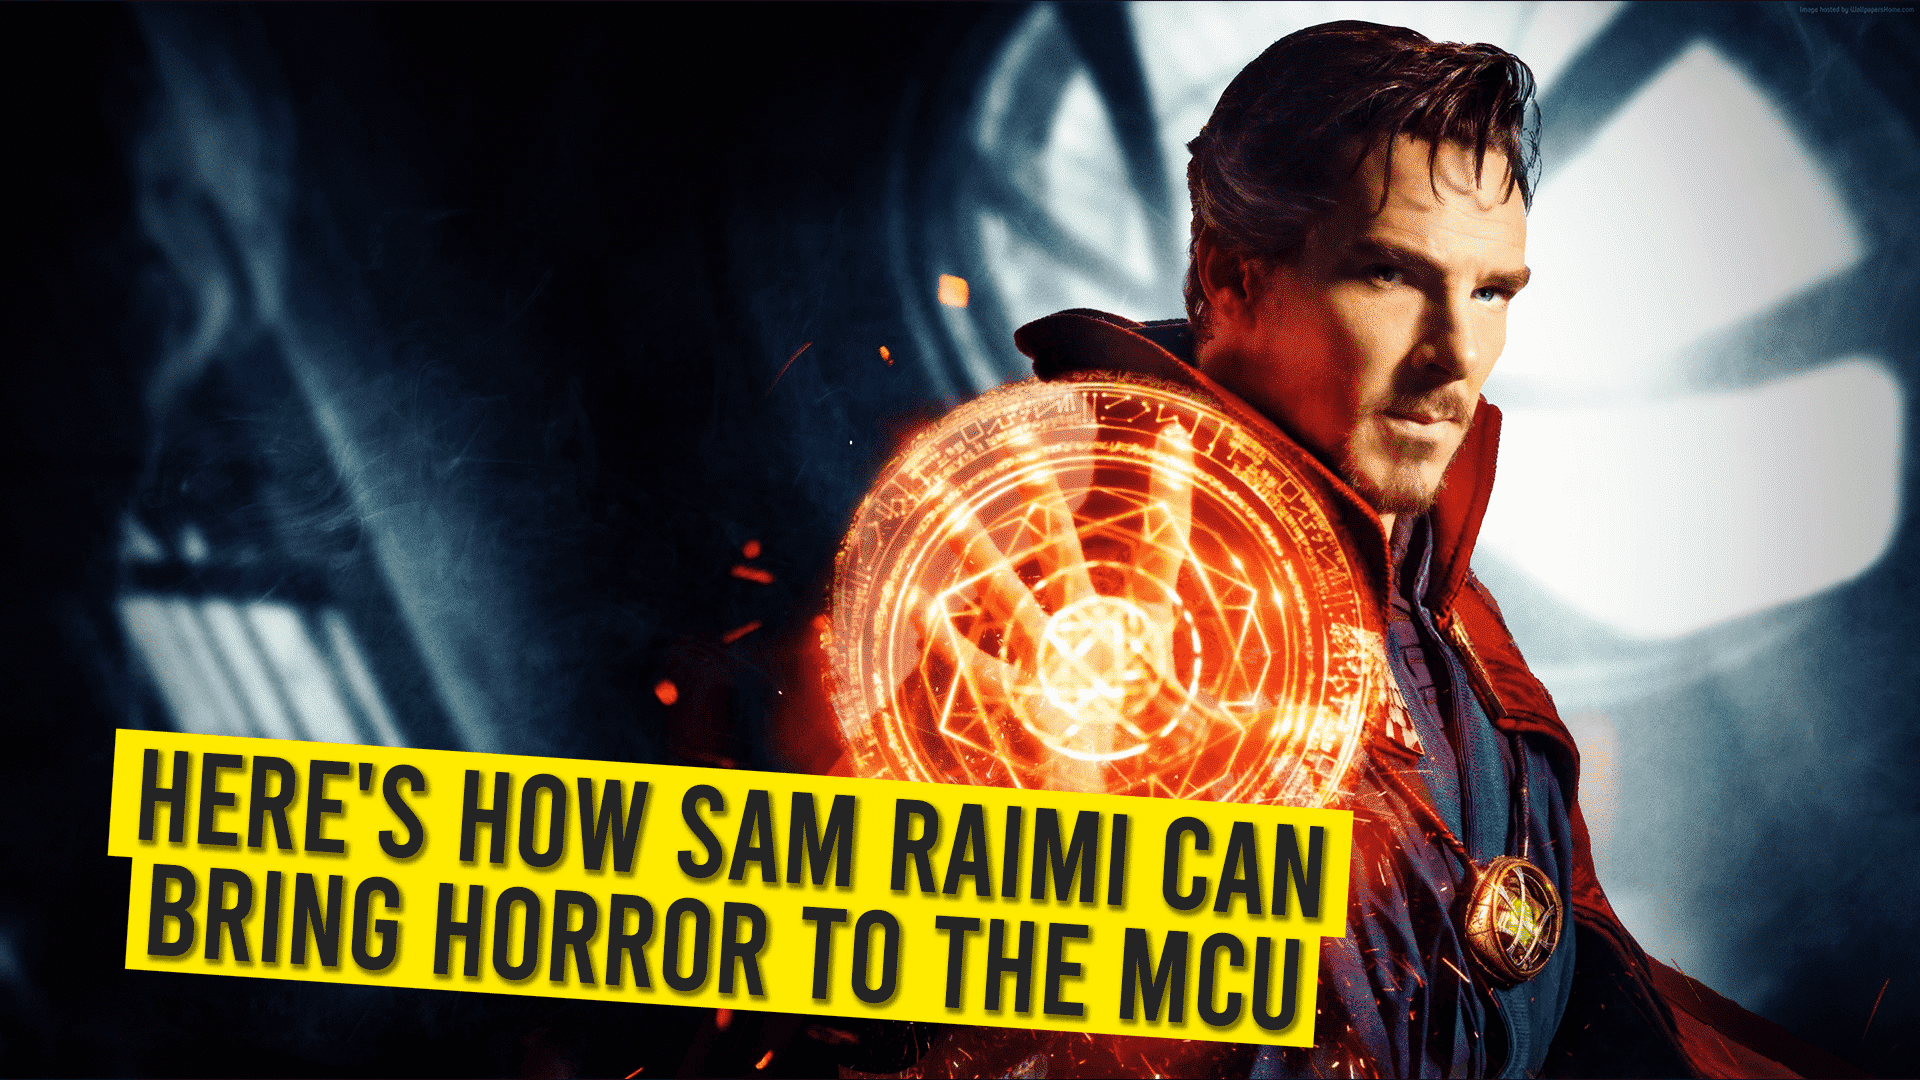 Here's How Sam Raimi Can Bring Horror To The MCU